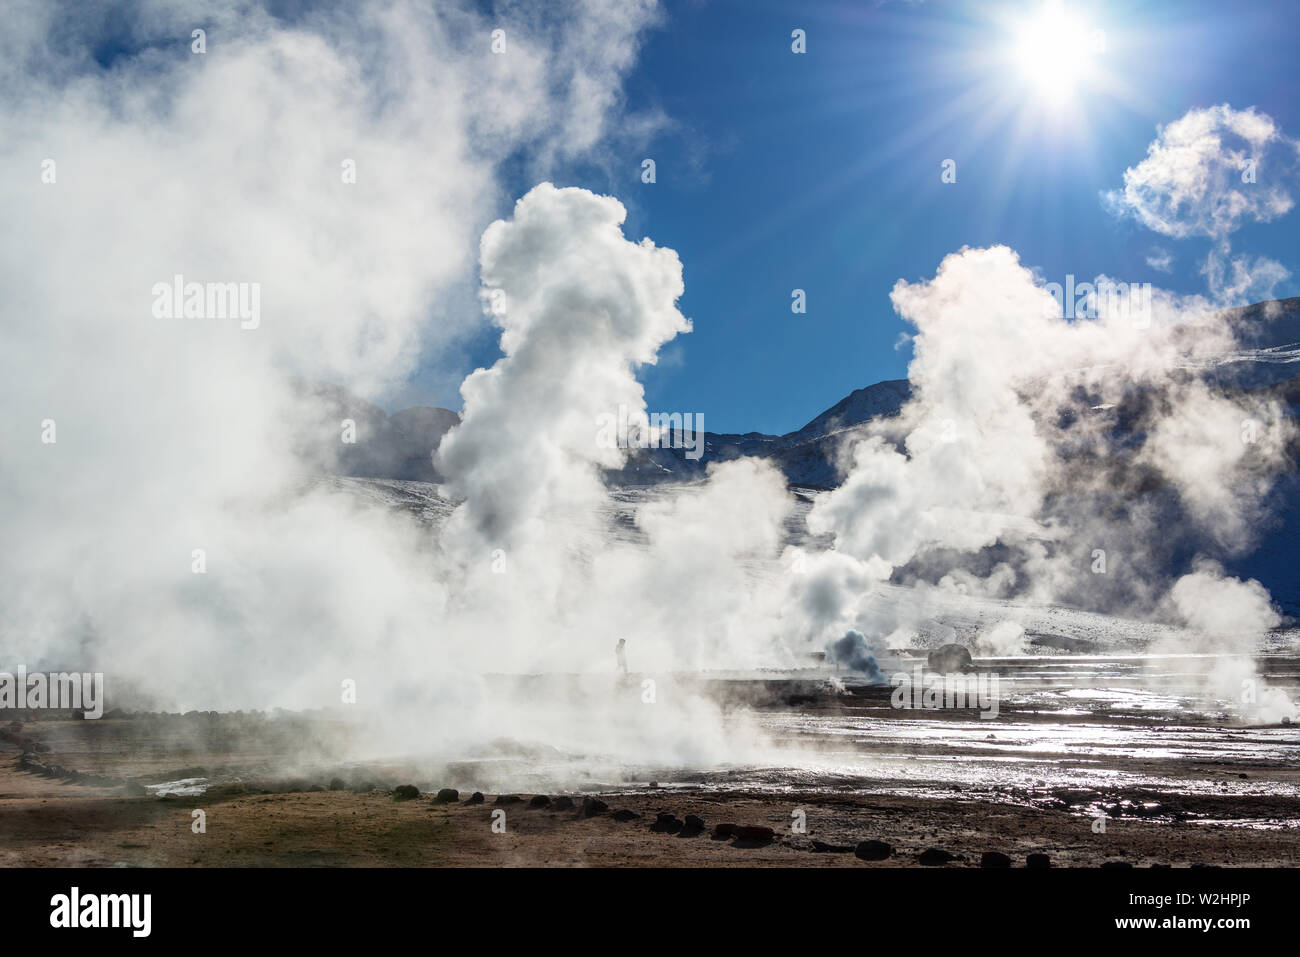 El Tatio geysers in Chile, Silhouette of a man walking among the steams and fumaroles at sunrise - Stock Image